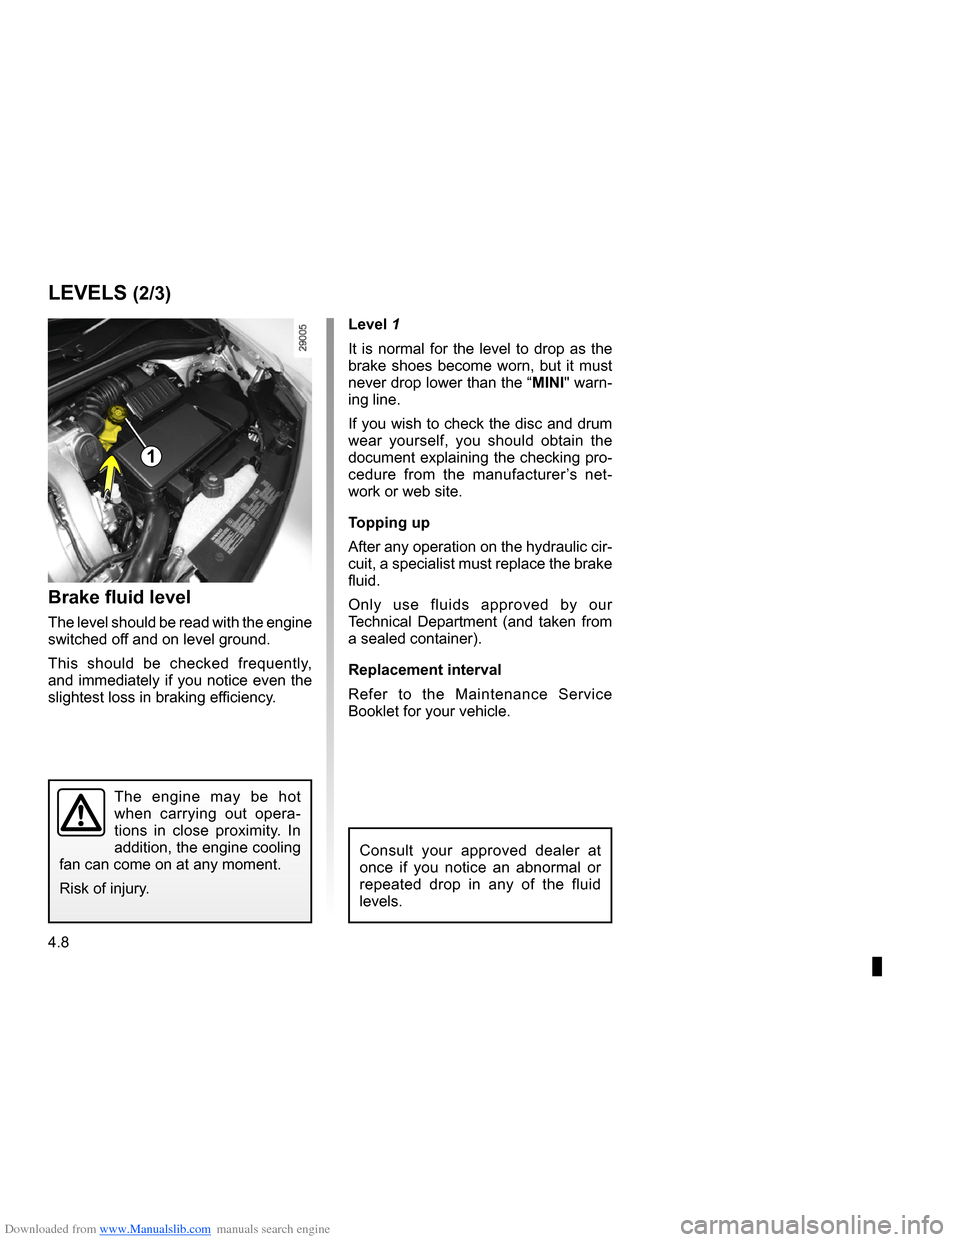 RENAULT CLIO 2009 X85 / 3.G Owners Manual, Page 182